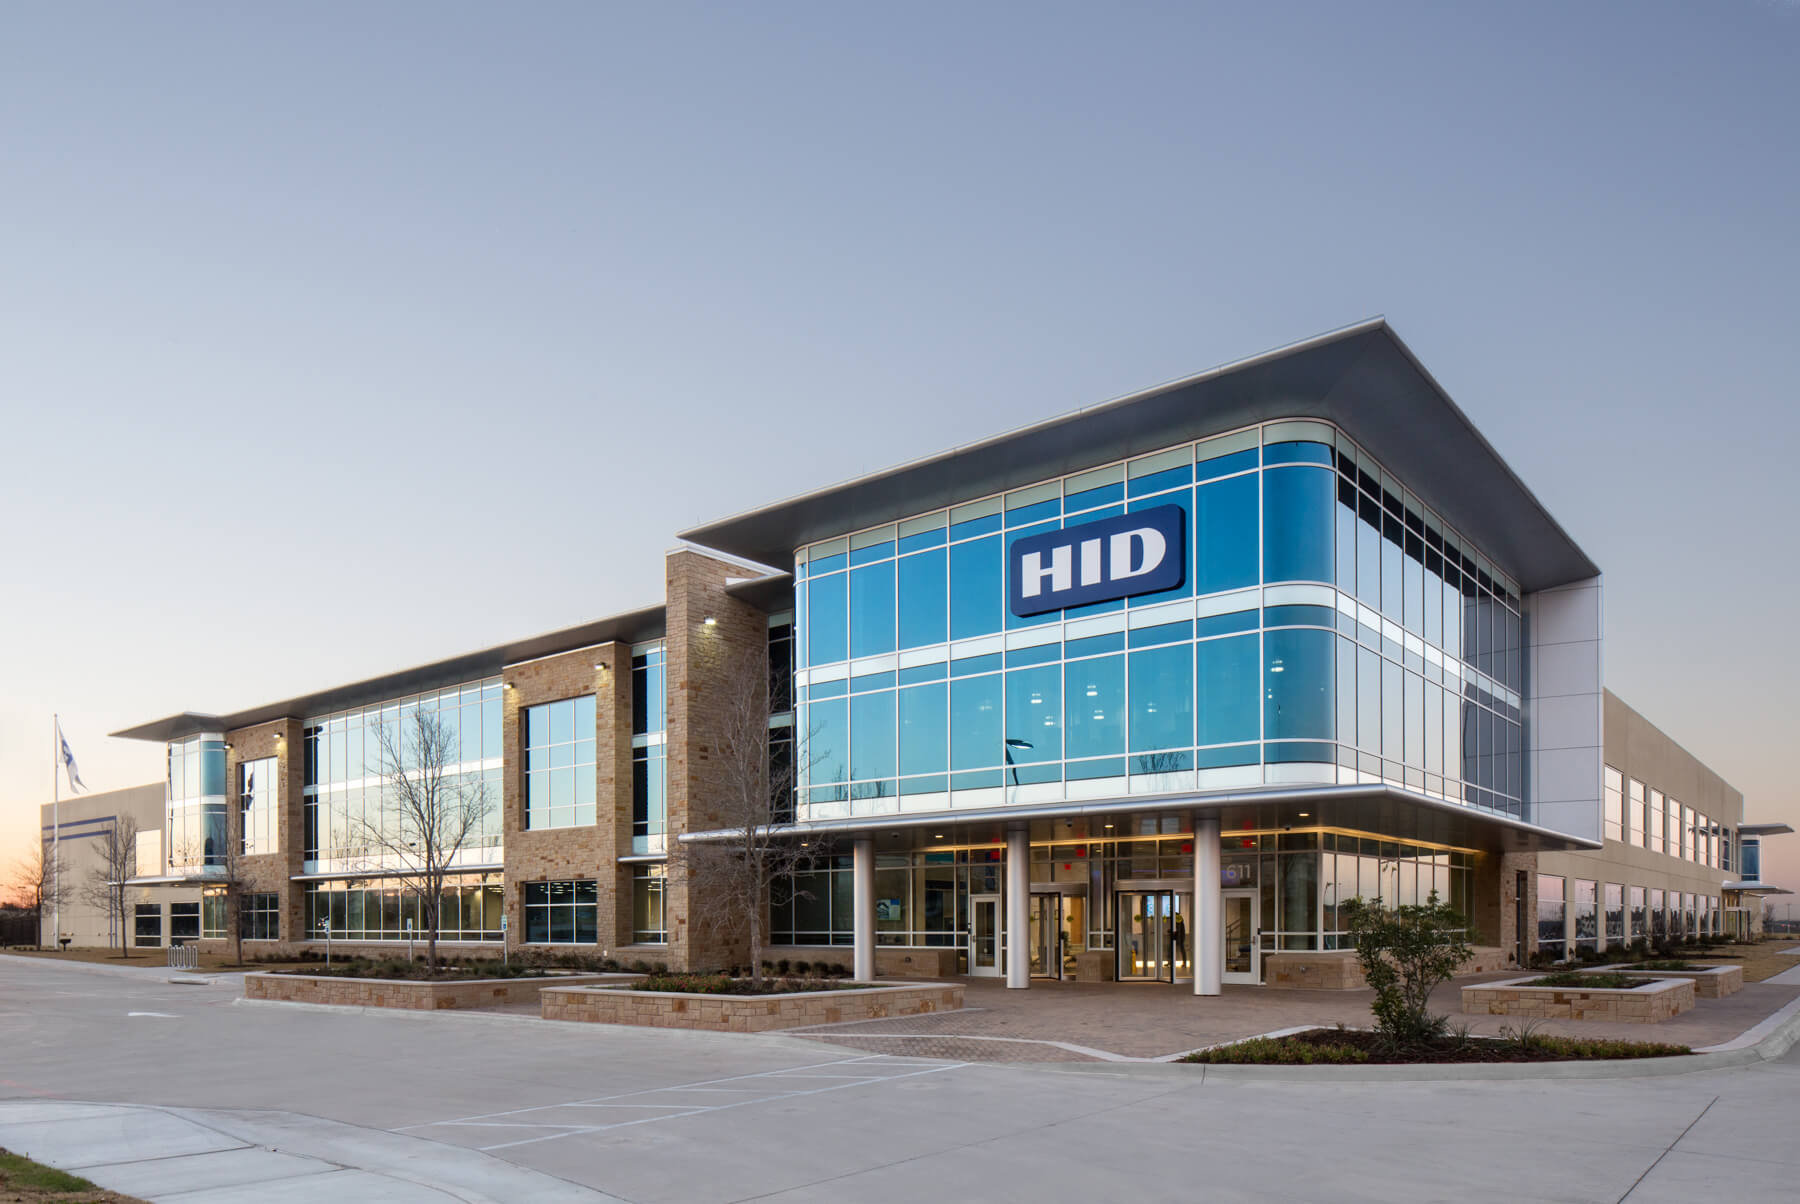 HID corporate office